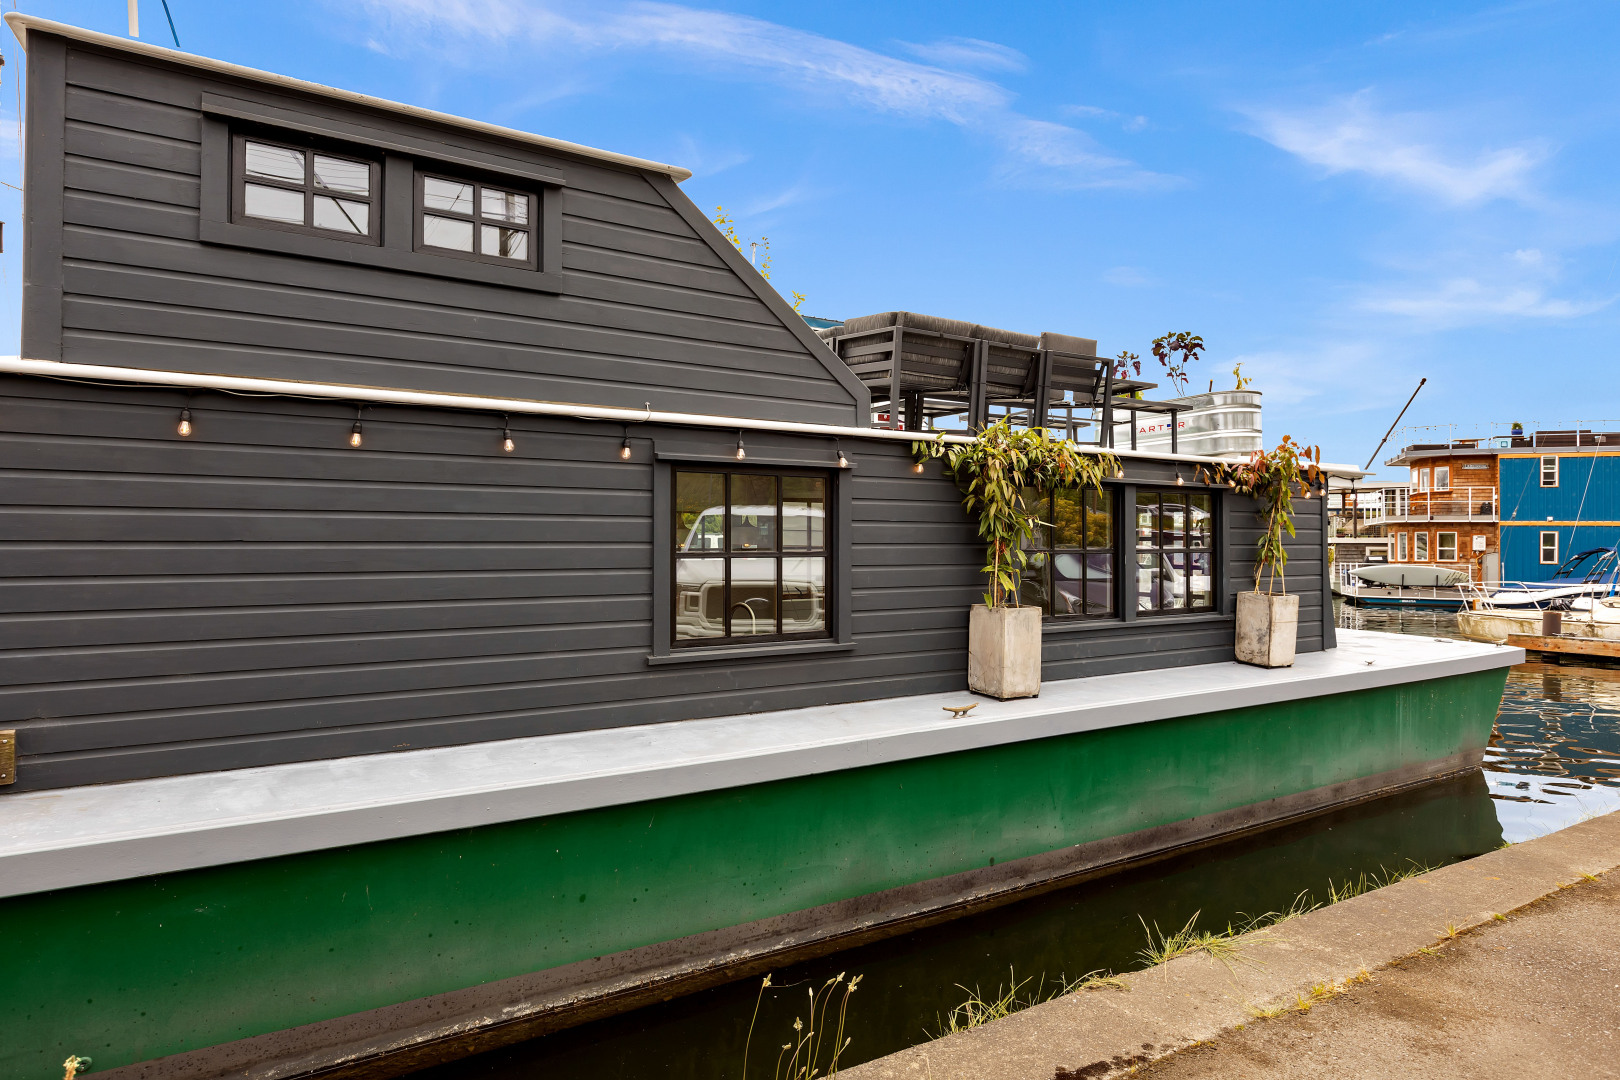 "This stunning houseboat ""Peace"" on Lake Union is{&nbsp;}New York meets Seattle! Full of natural light and gray tones, Peace features an open layout, warm wood details, a large jet tub, washer & dryer and large rooftop deck. Built in 1987, Peace comes in at 504 square feet and is listed for $395,000,{&nbsp;}<a  href=""https://1611412.rsir.homes/"" target=""_blank"" title=""https://1611412.rsir.homes/"">more info online</a>. (Image:{&nbsp;}<a  href=""https://www.instagram.com/apnwphotographer/"" target=""_blank"" title=""https://www.instagram.com/apnwphotographer/"">Nicolas Gerlach / @apnwphotographer</a>)"